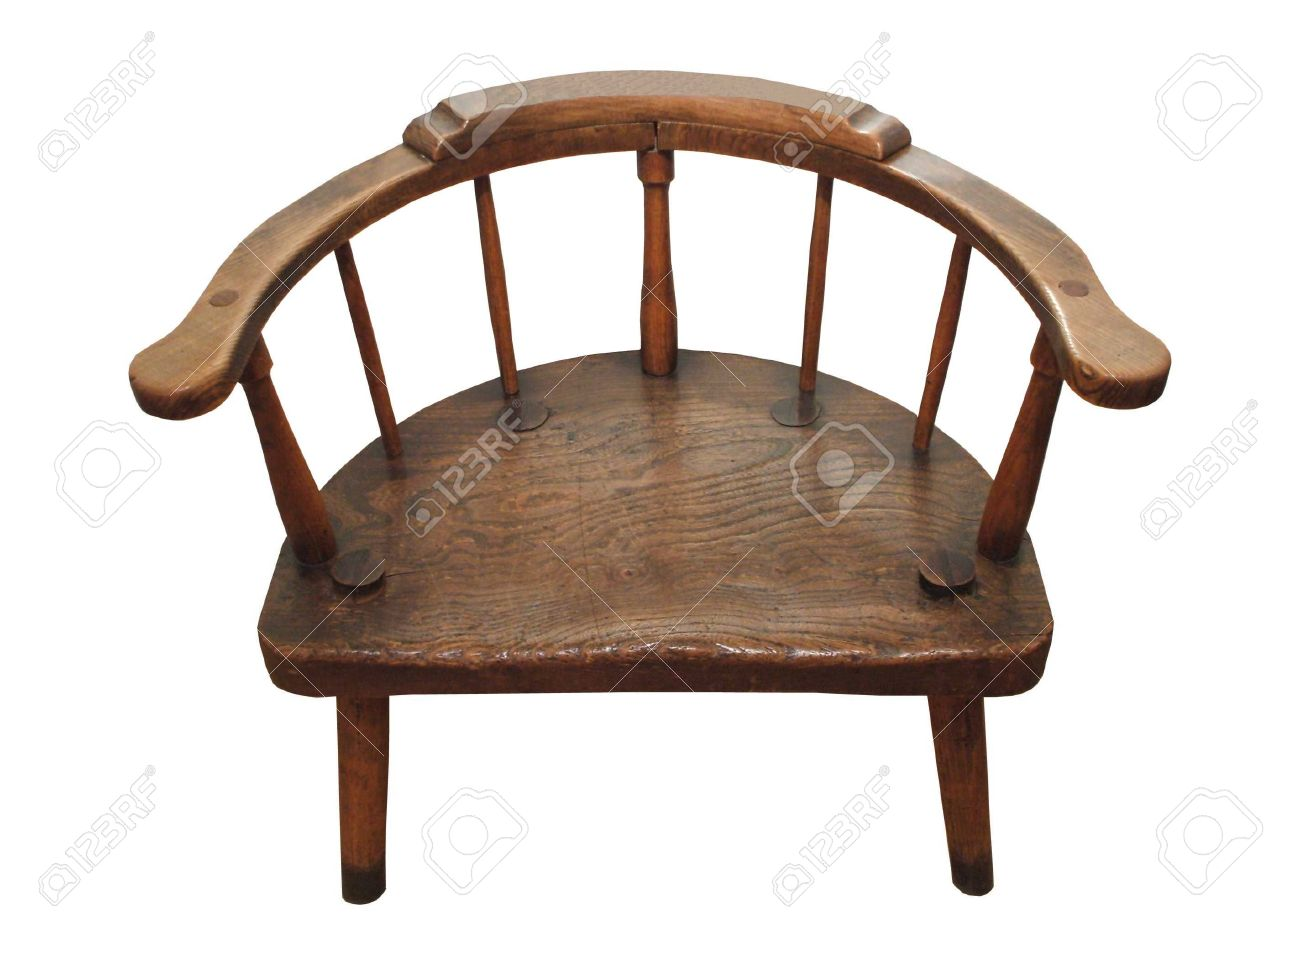 A Round Backed Wide Antique Wooden Chair. Stock Photo - 5902331 - A Round Backed Wide Antique Wooden Chair. Stock Photo, Picture And